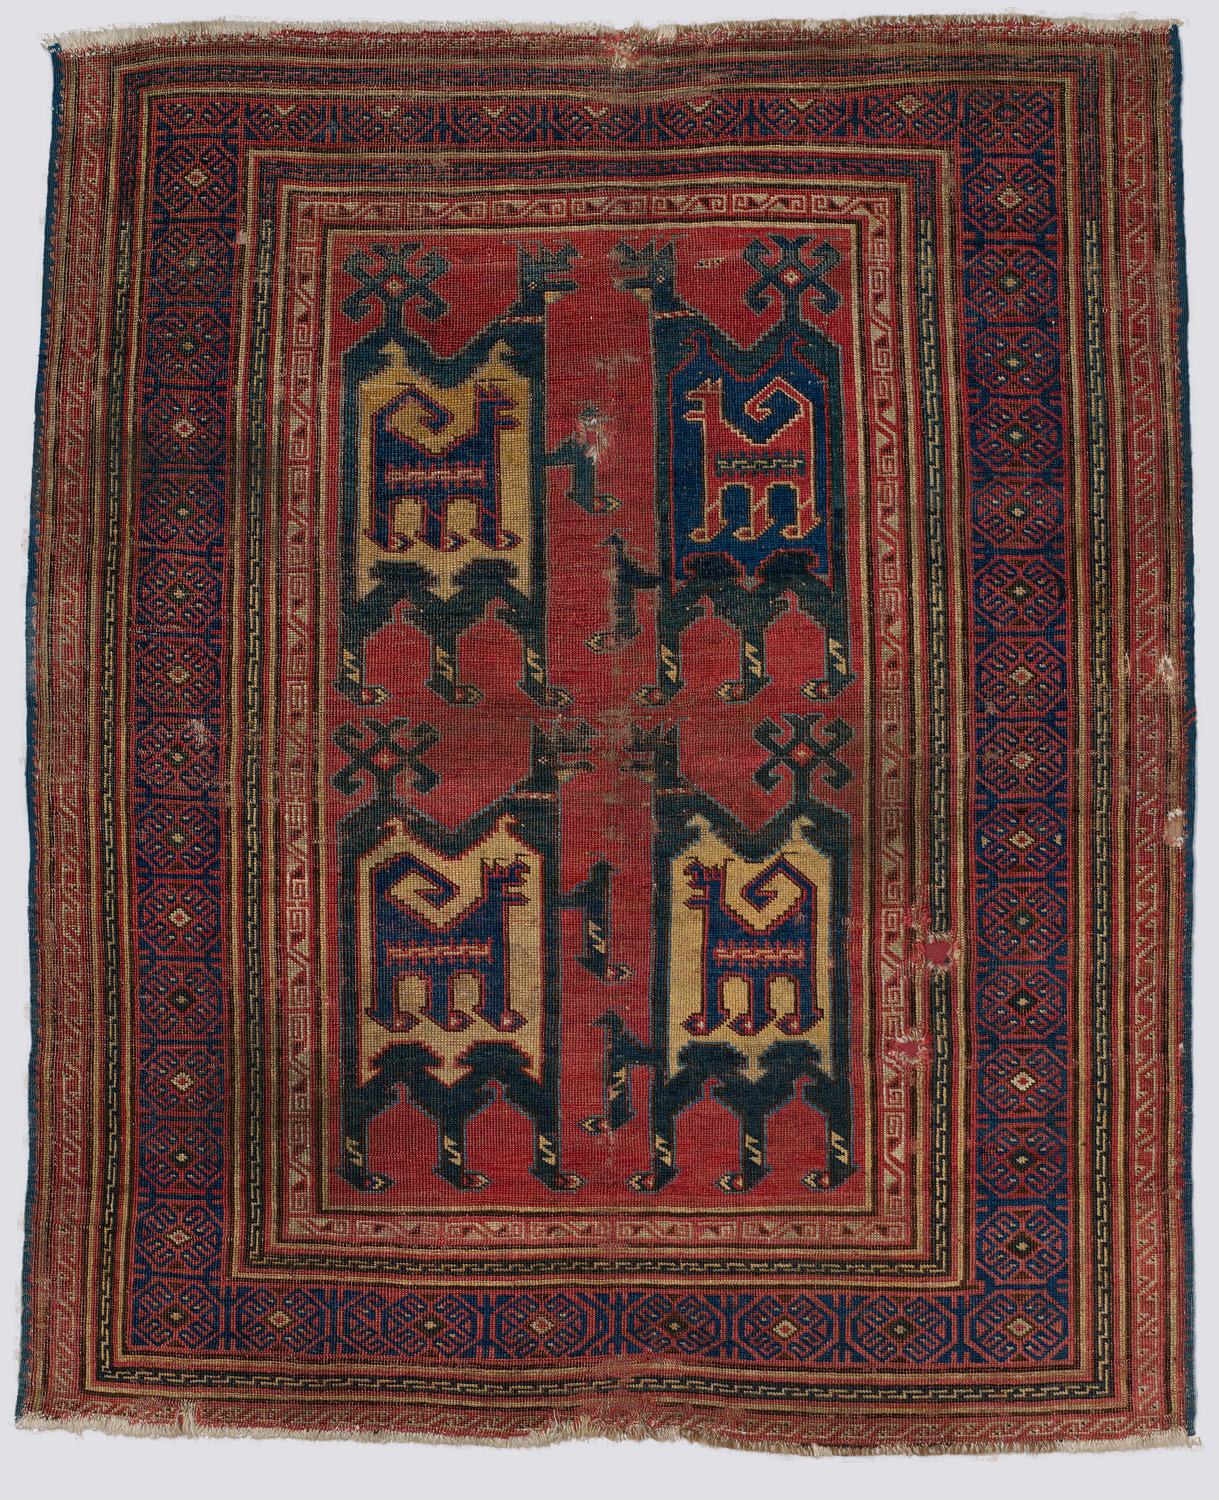 Turkish animal carpet, 14th century, Metropolitan Museum